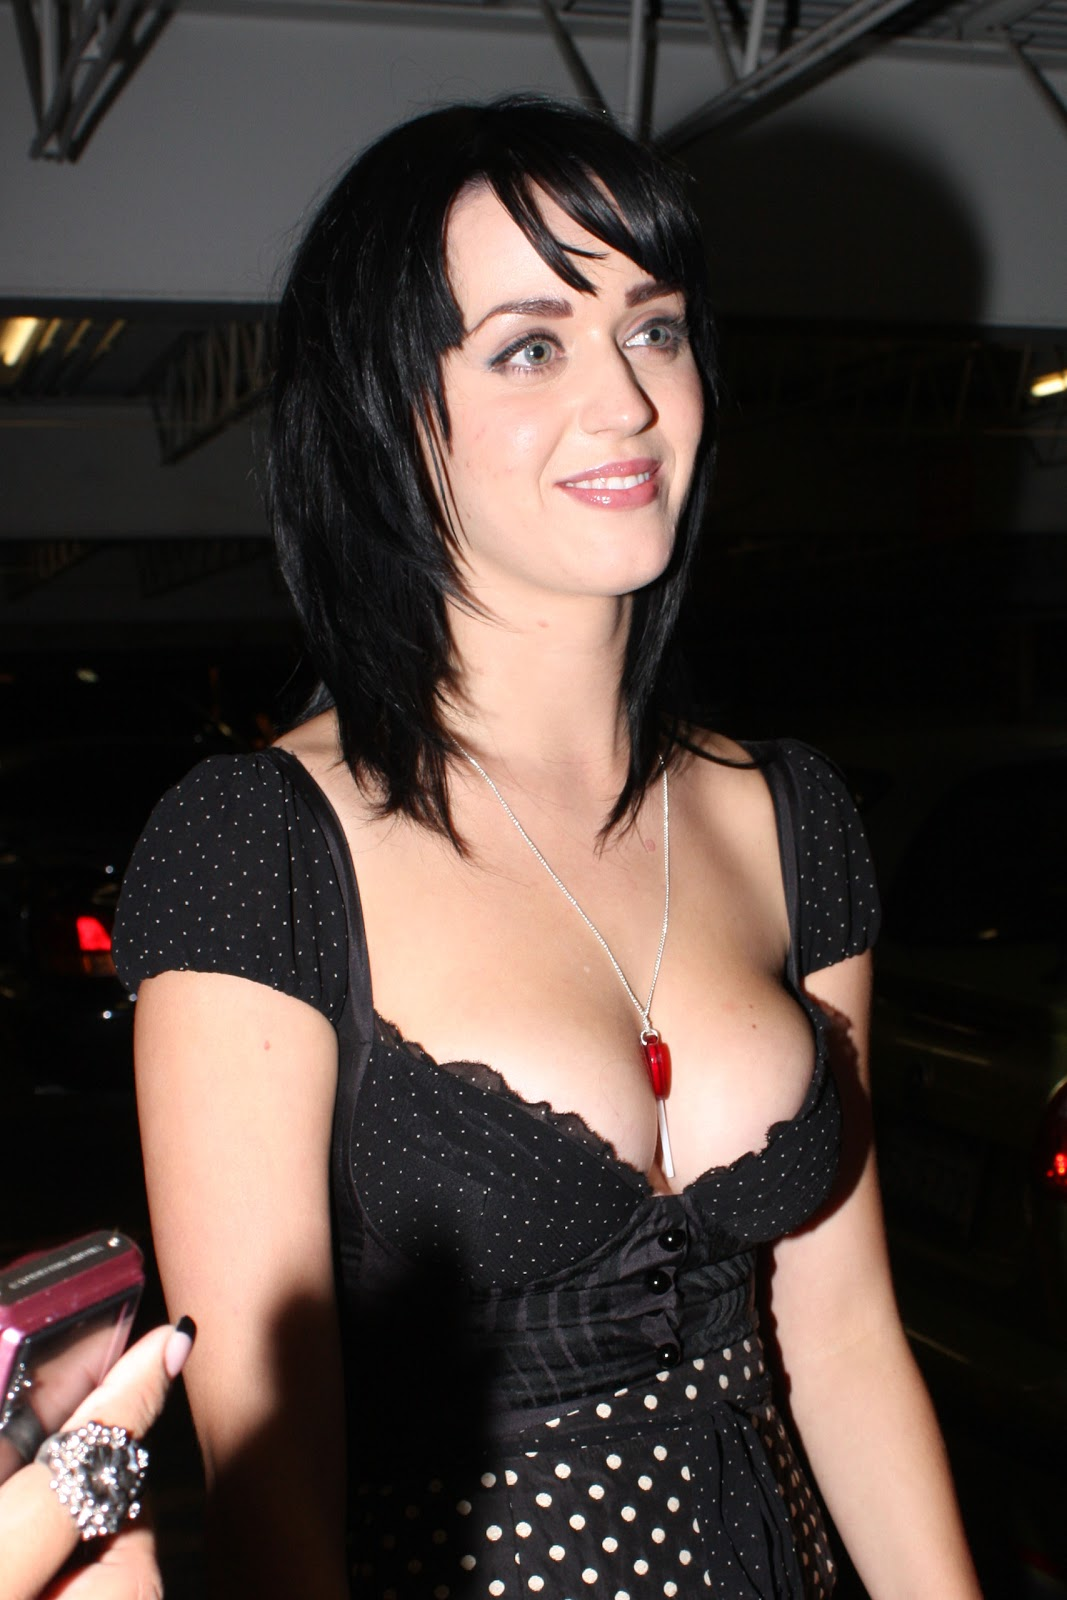 katy perry boobs photos